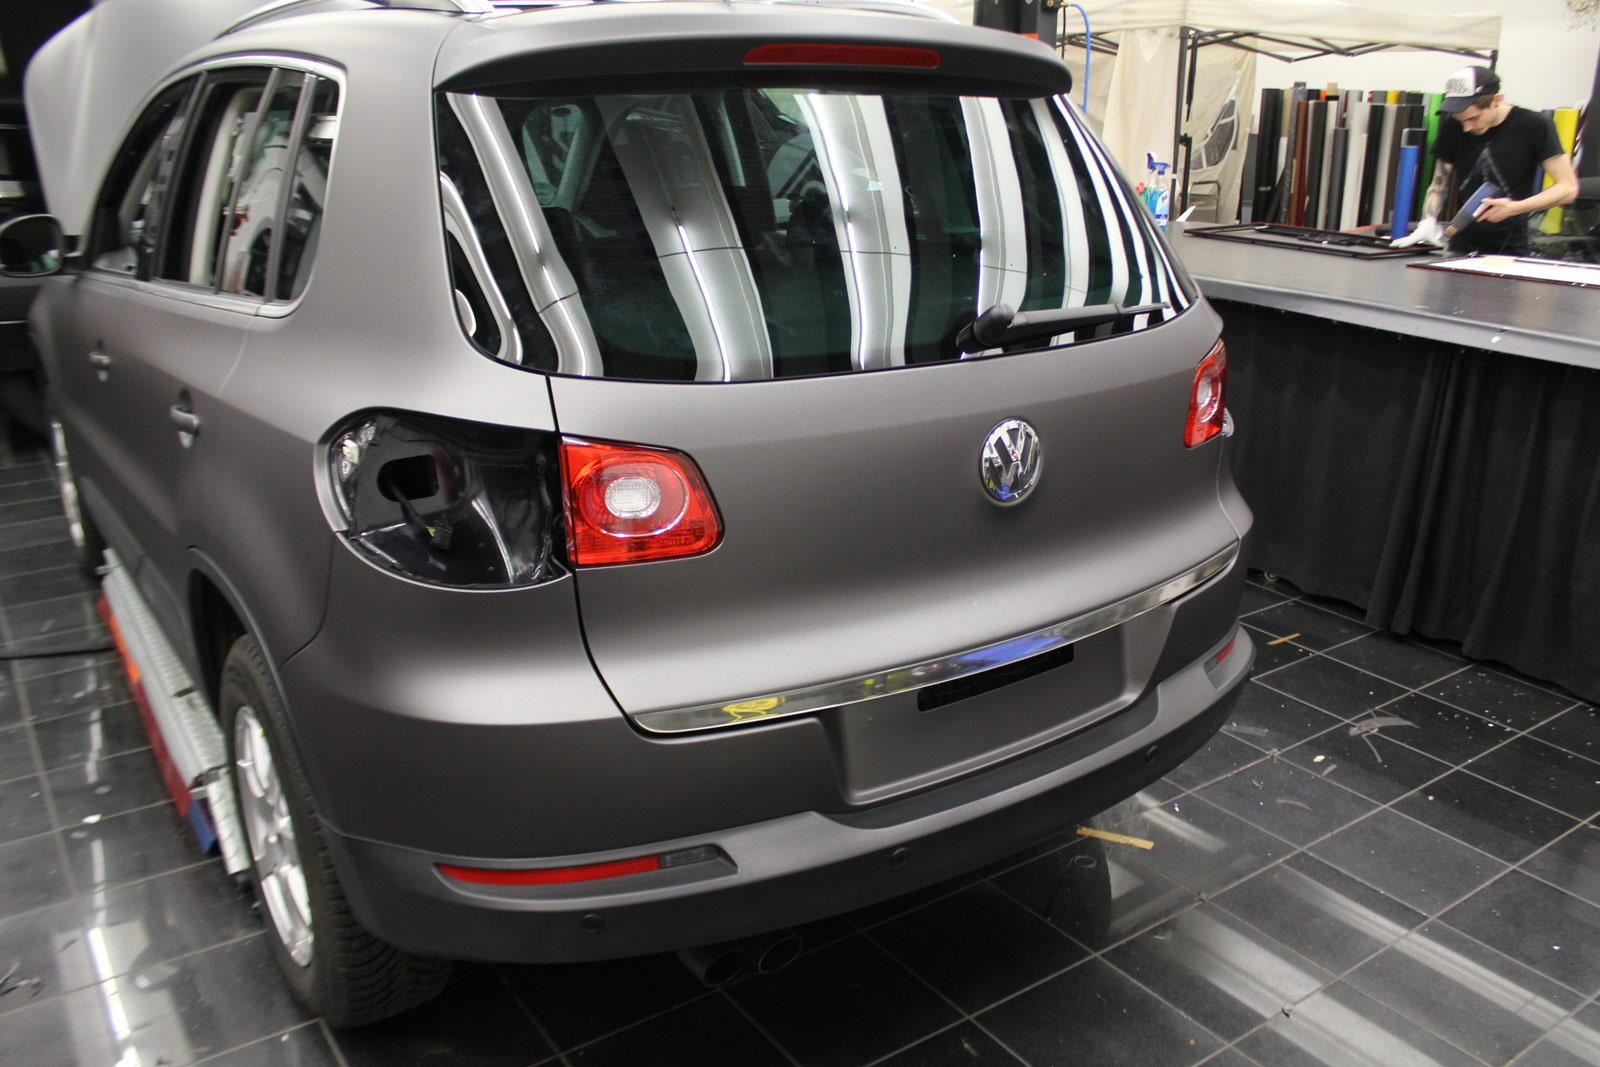 VW_Tiguan_Foliert_Anthrazit_Matt_Metallic_Carbon_Spiegel_05